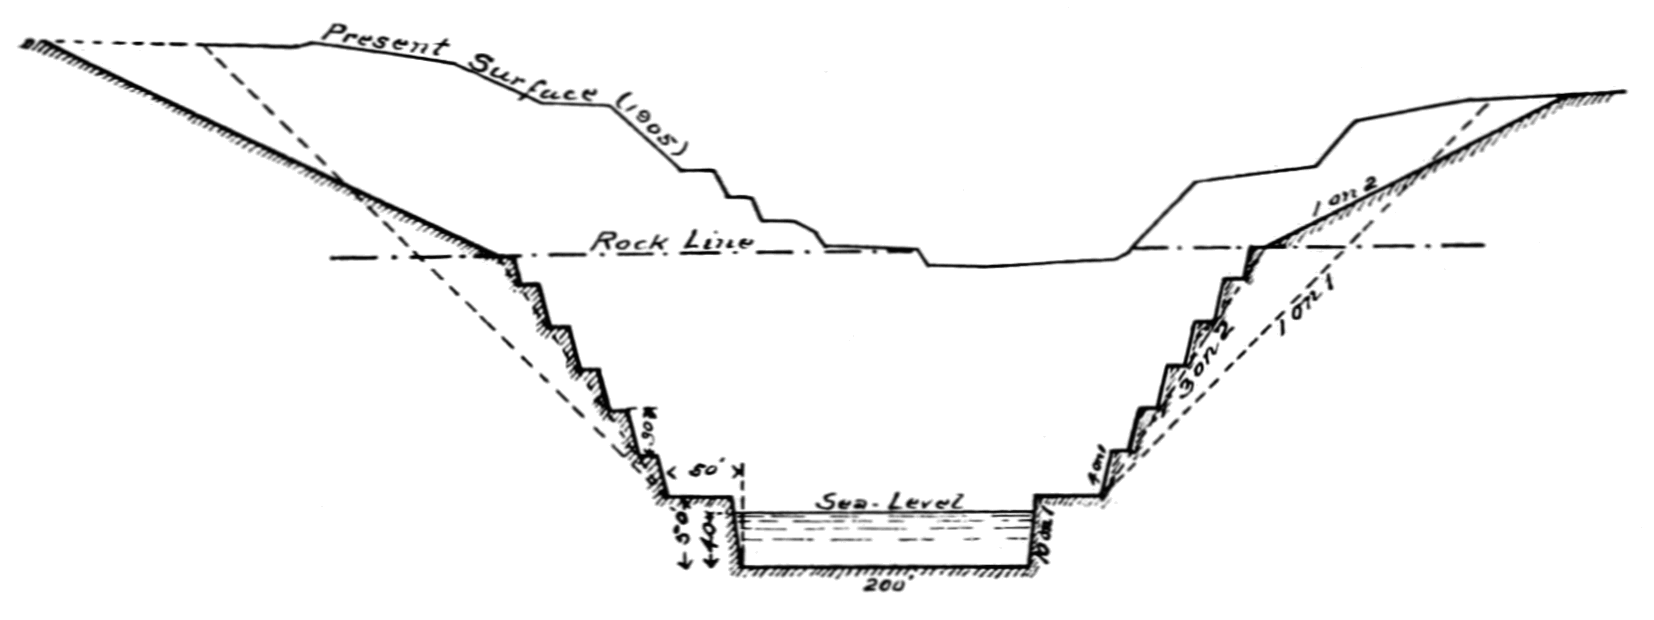 PSM V74 D426 Cross section of the culebra cut.png